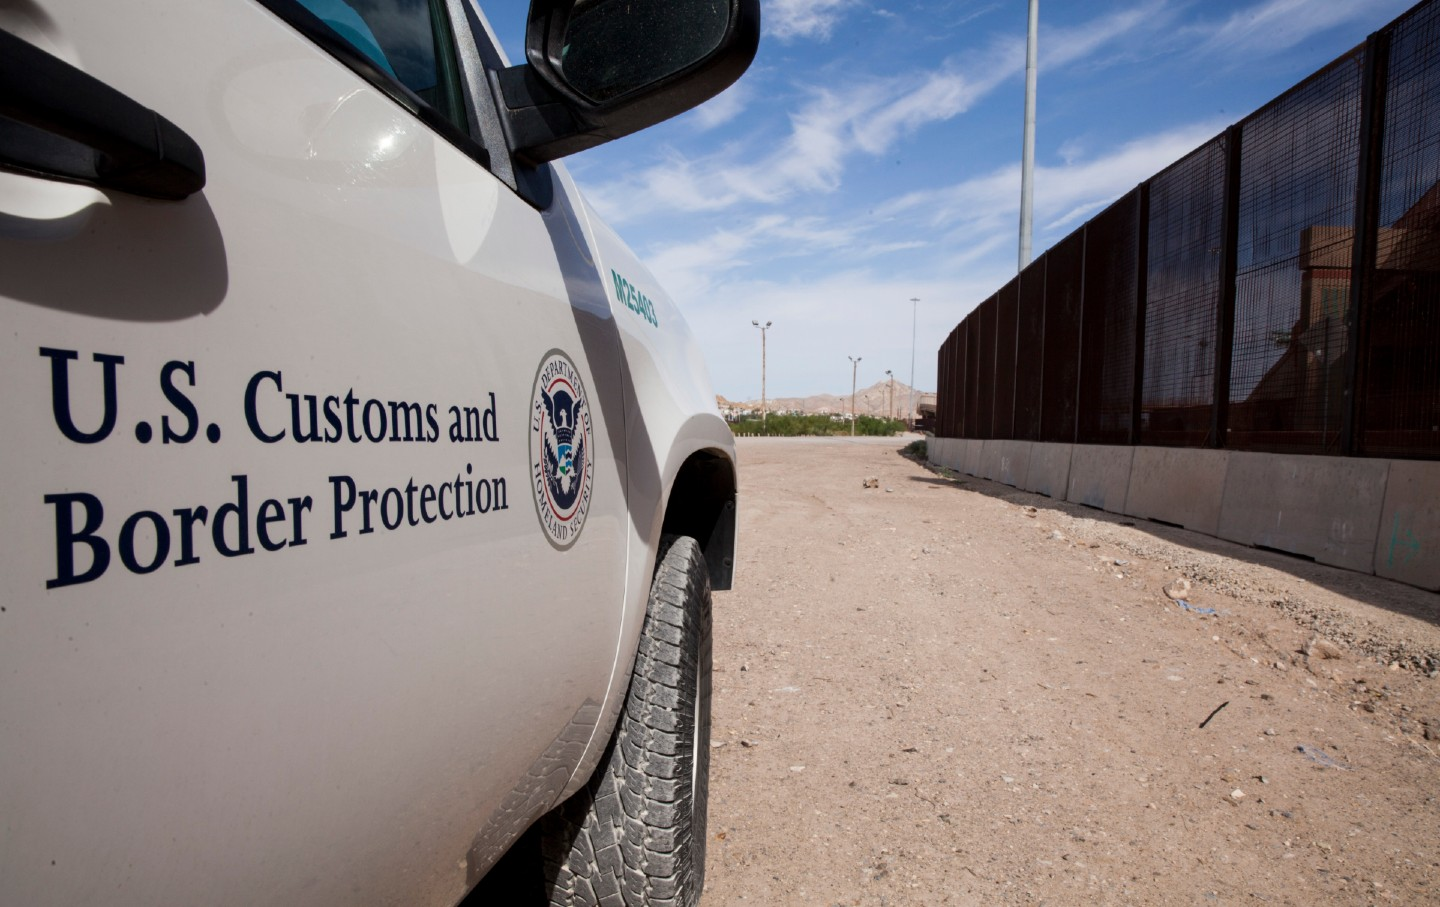 A Customs and Border Patrol car near the border fence.